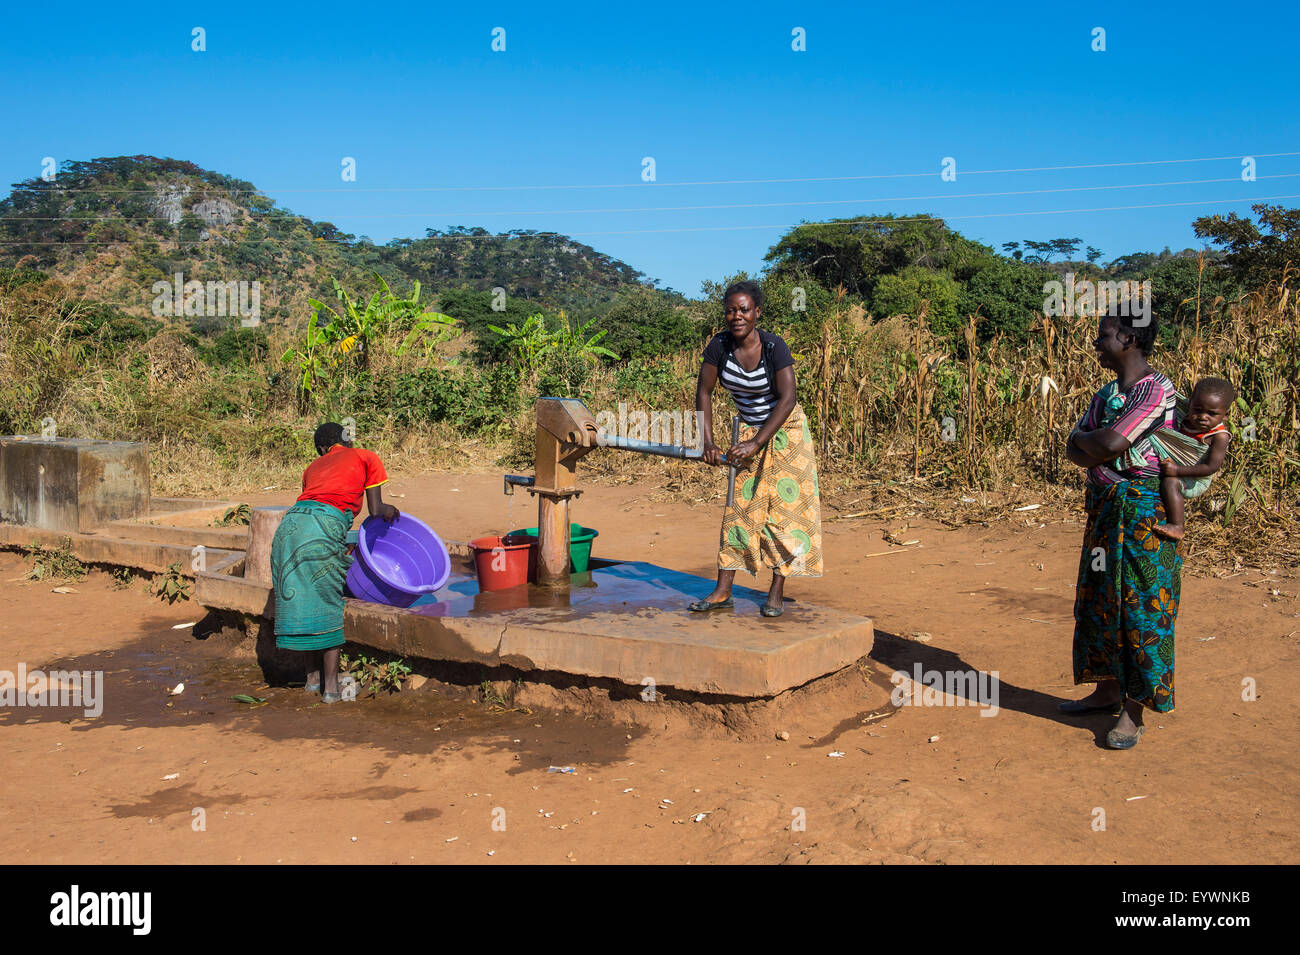 Local women at a water well, Malawi, Africa - Stock Image